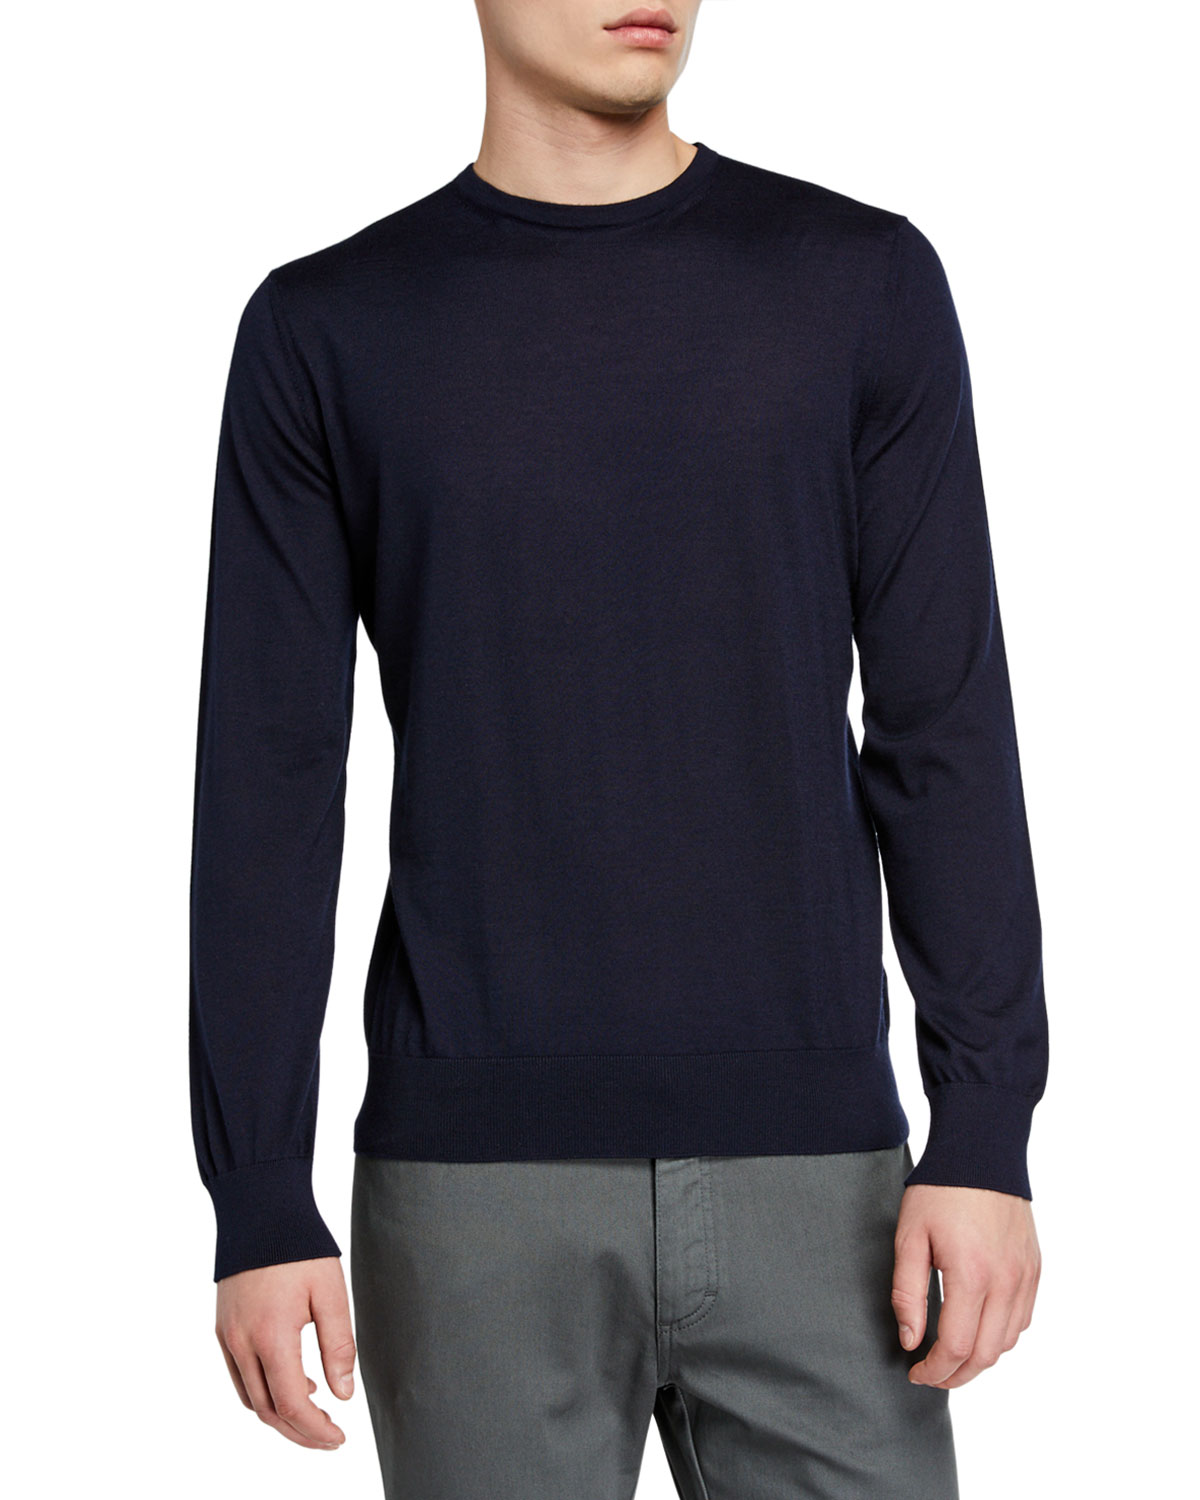 Ermenegildo Zegna Sweaters MEN'S LIGHTWEIGHT CASHMERE/SILK SWEATER, NAVY